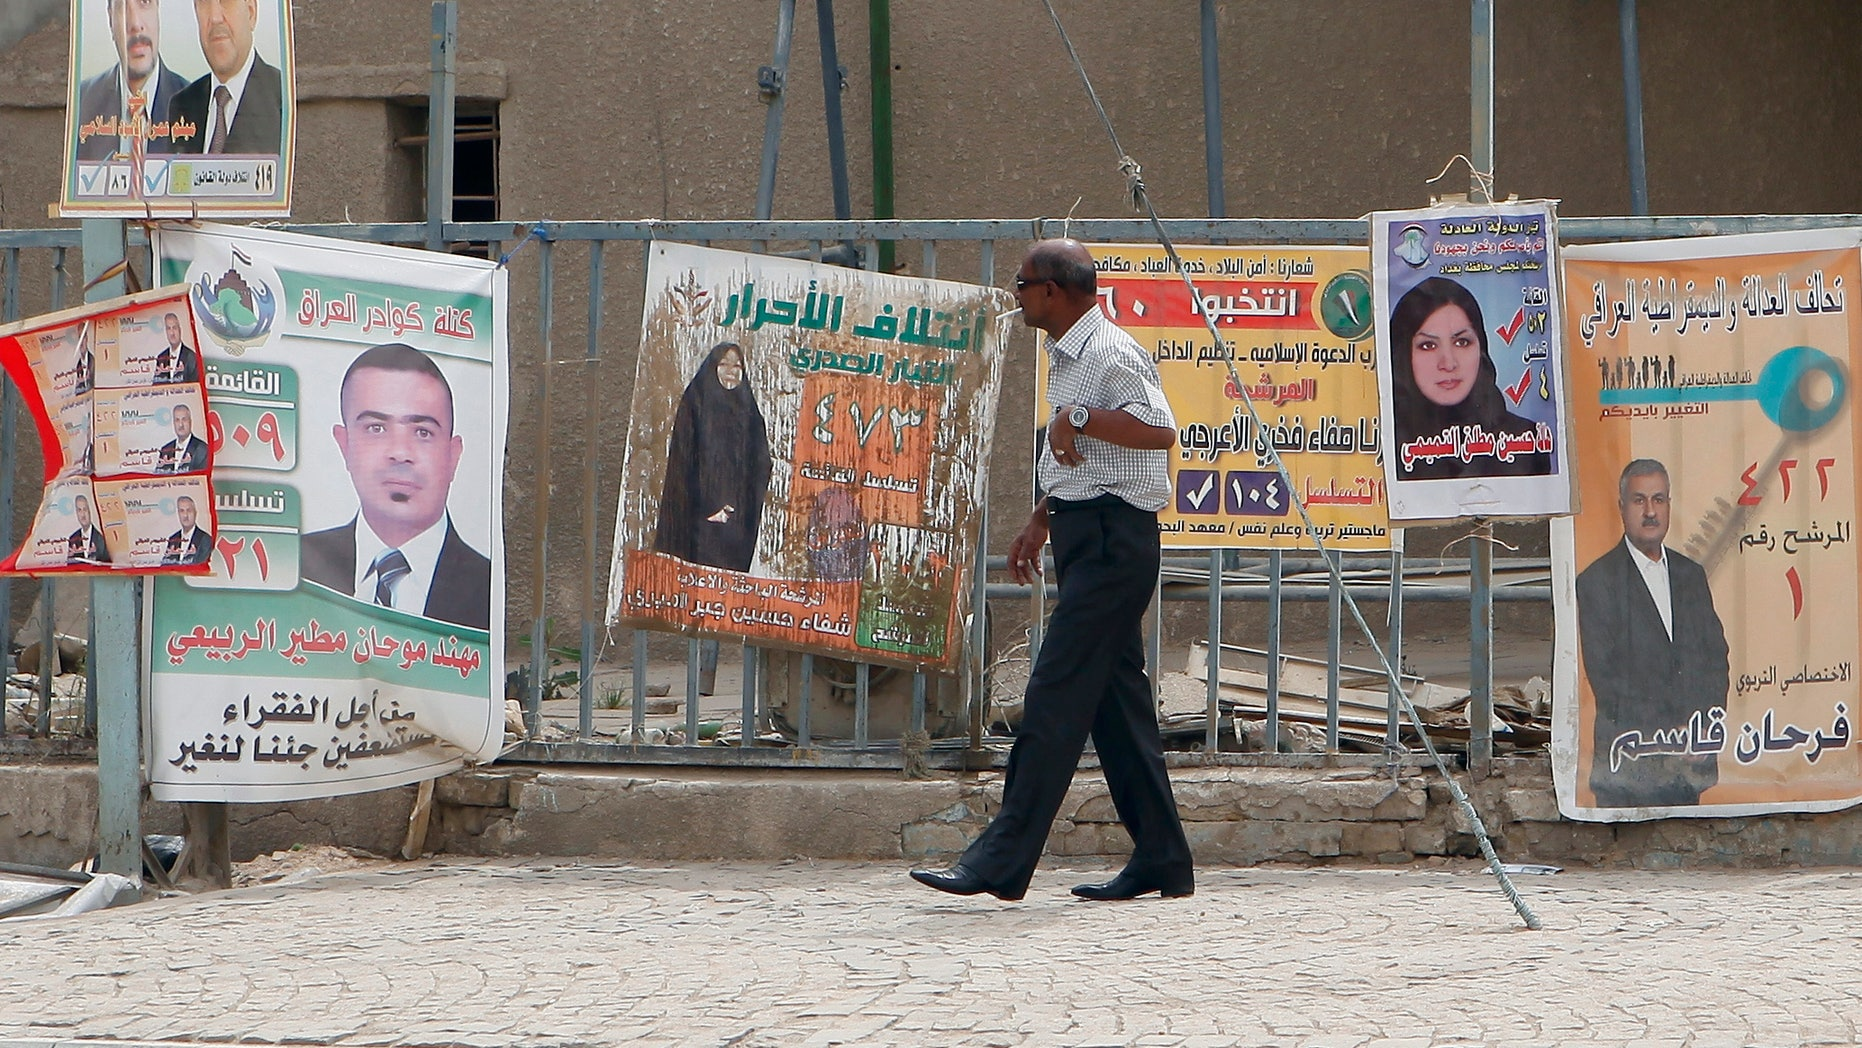 April 13, 2013: A man walks past election posters in Baghdad, Iraq.